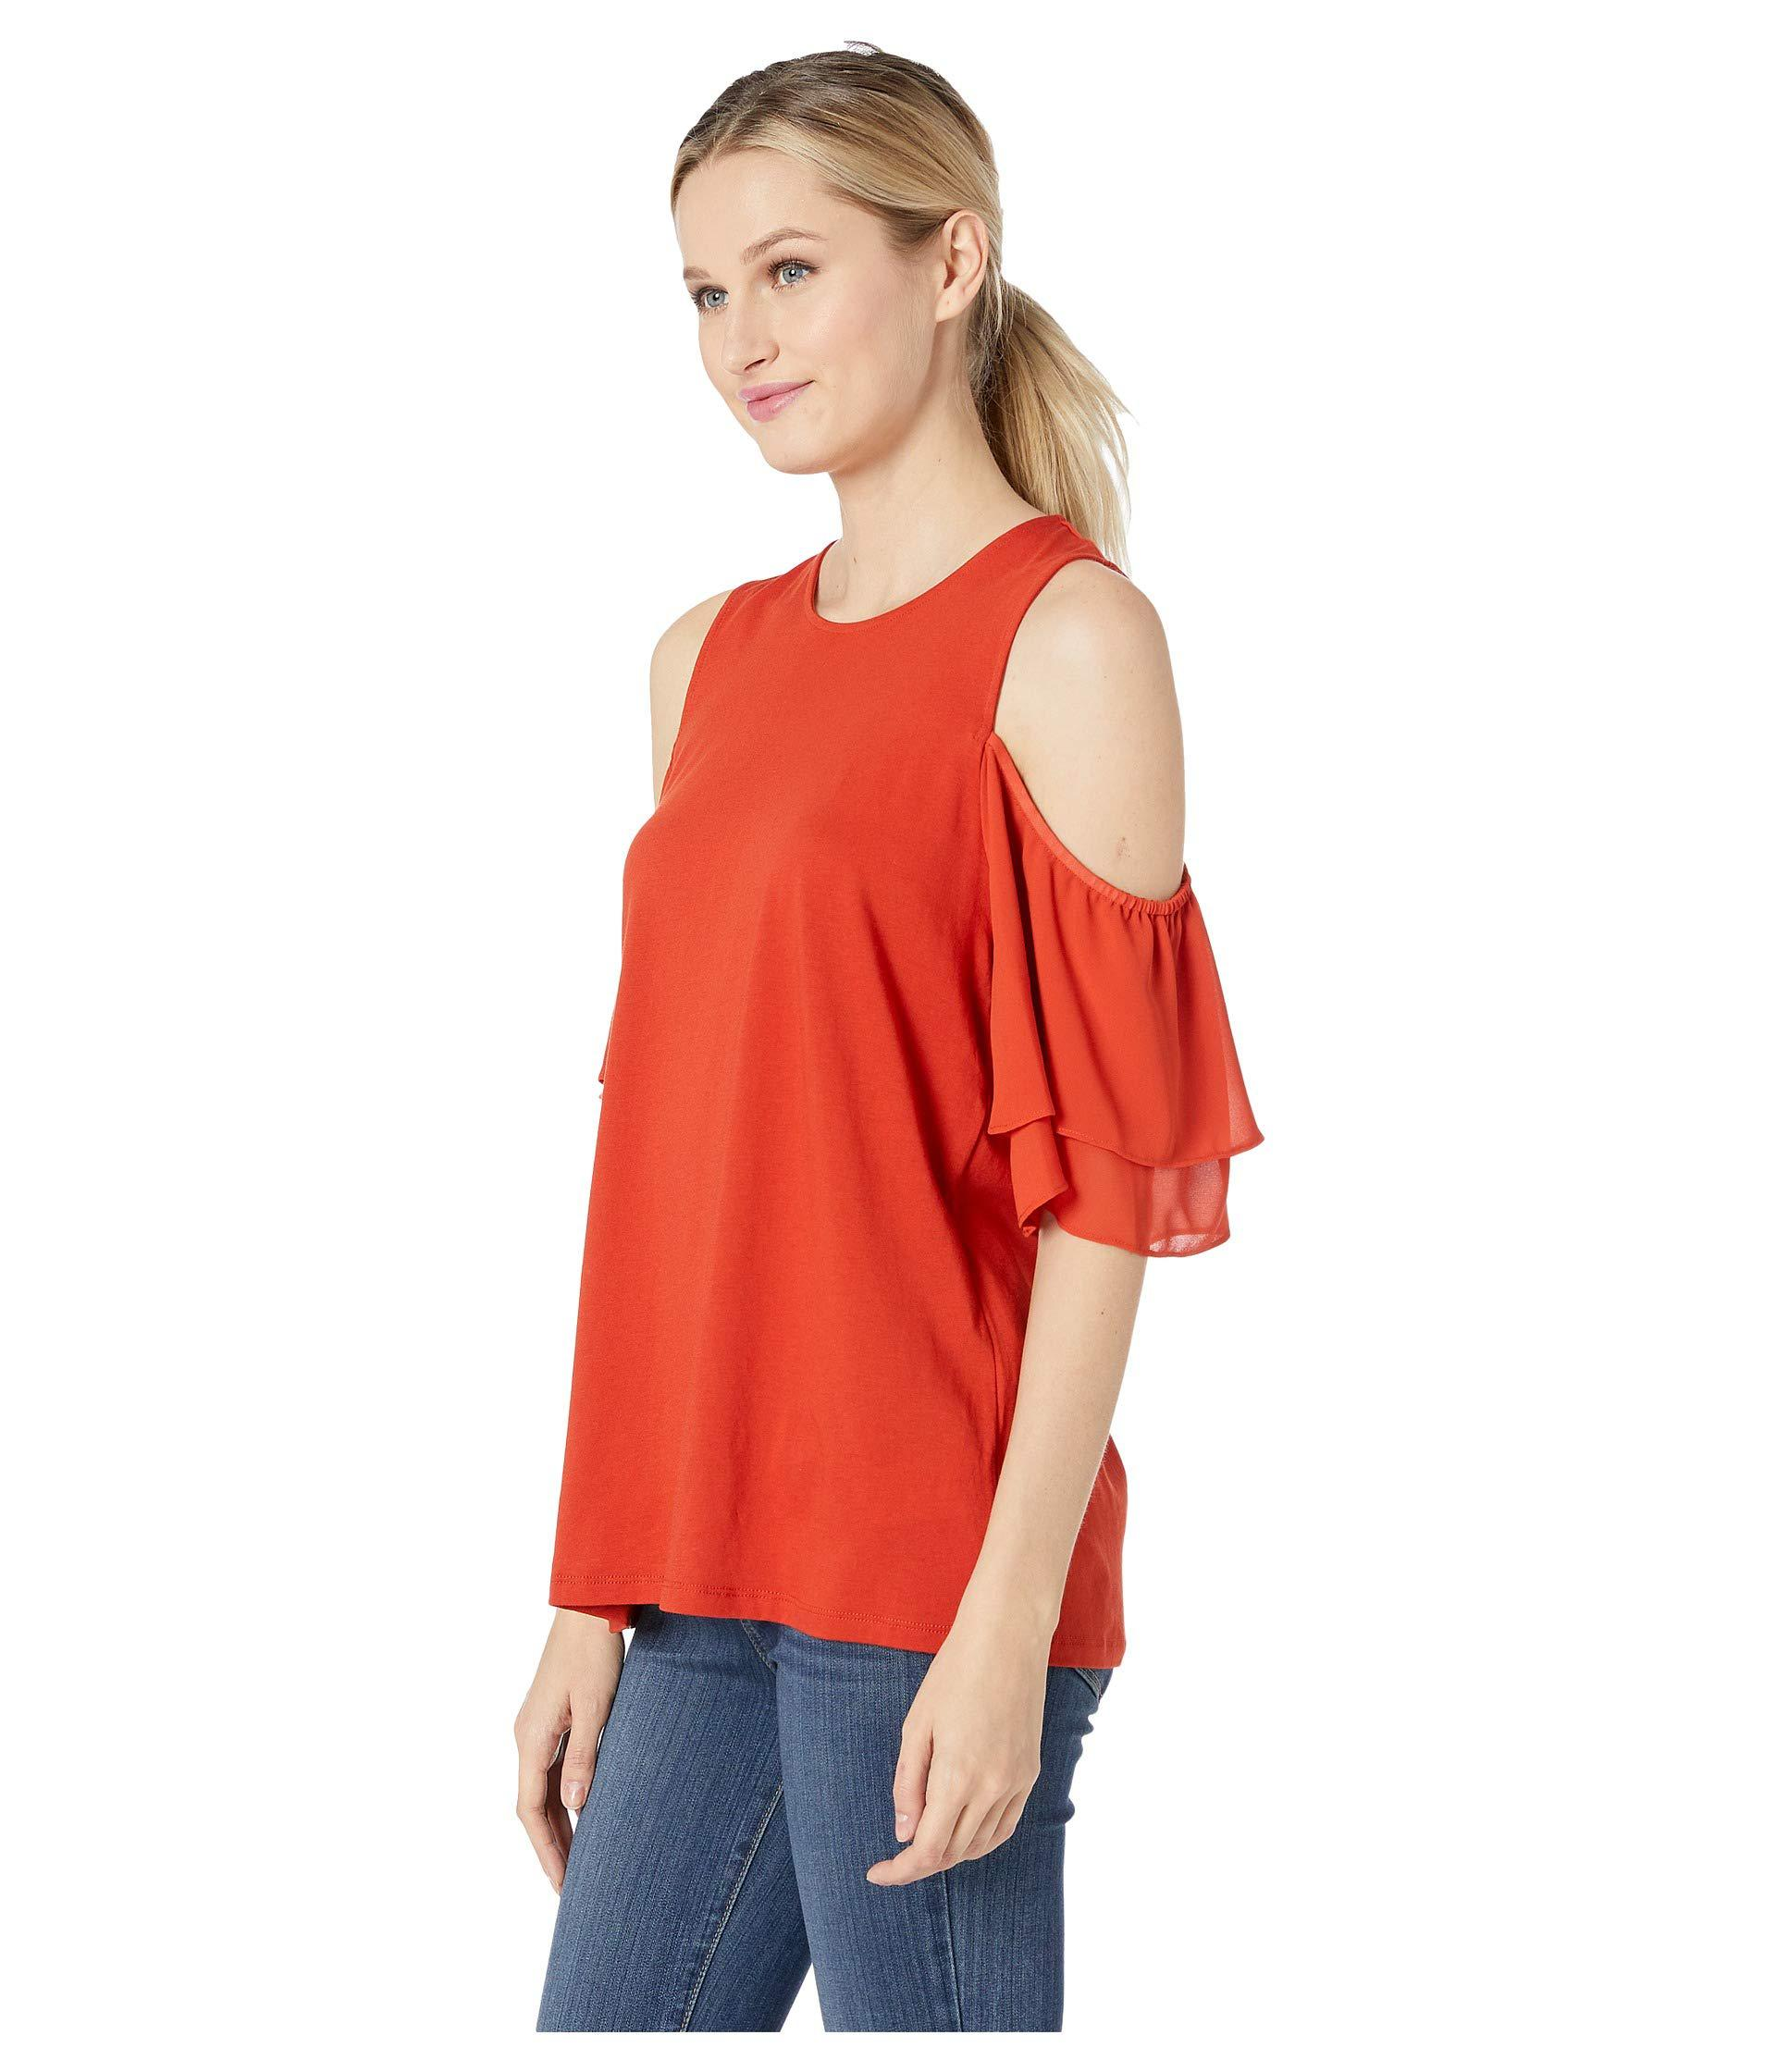 e3eccd5469a57 Lyst - Michael Michael Kors Georgette Flutter Cold Shoulder Top (bright  Terra Cotta) Women s Clothing in Red